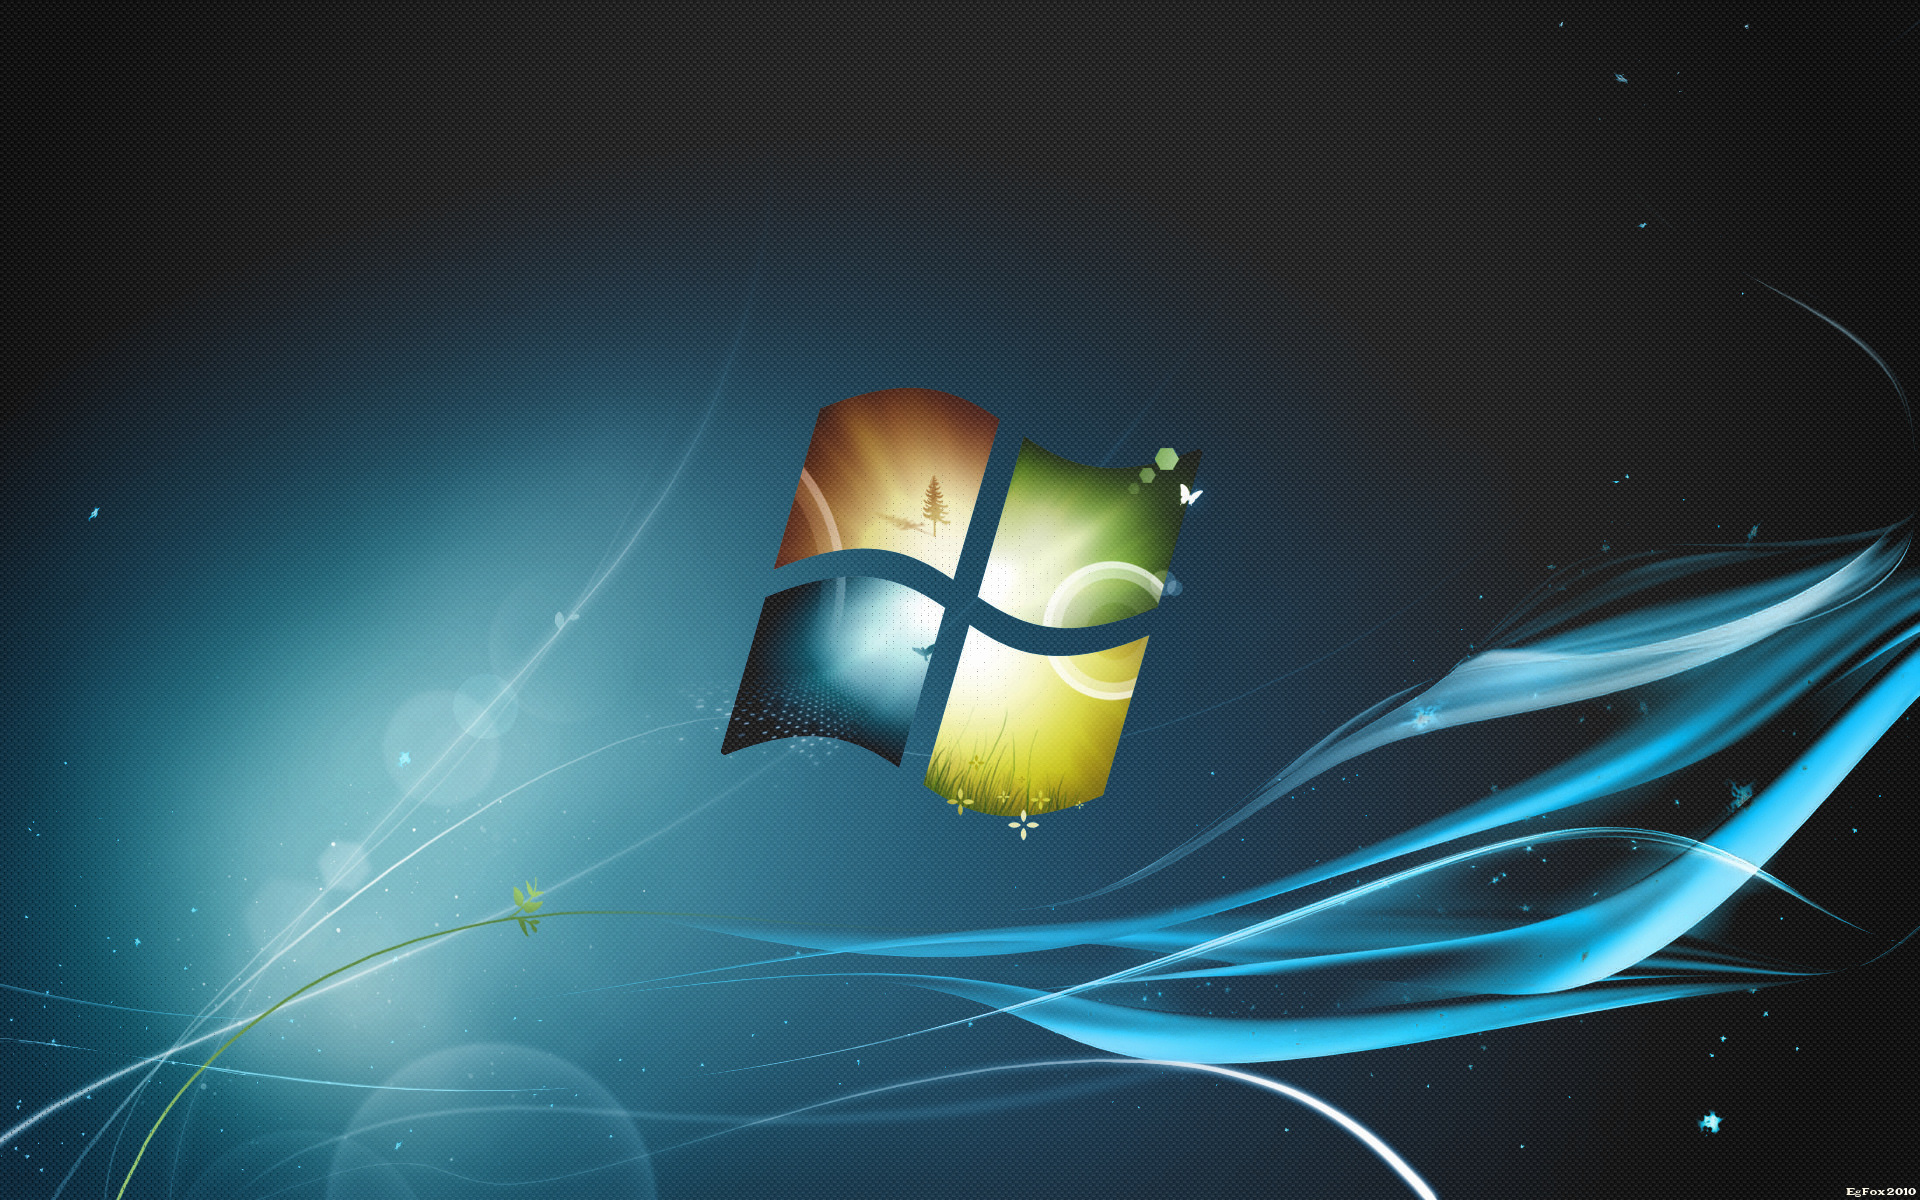 windows 7 backgrounds hd wallpapers windows 7 backgrounds hd 1920x1200